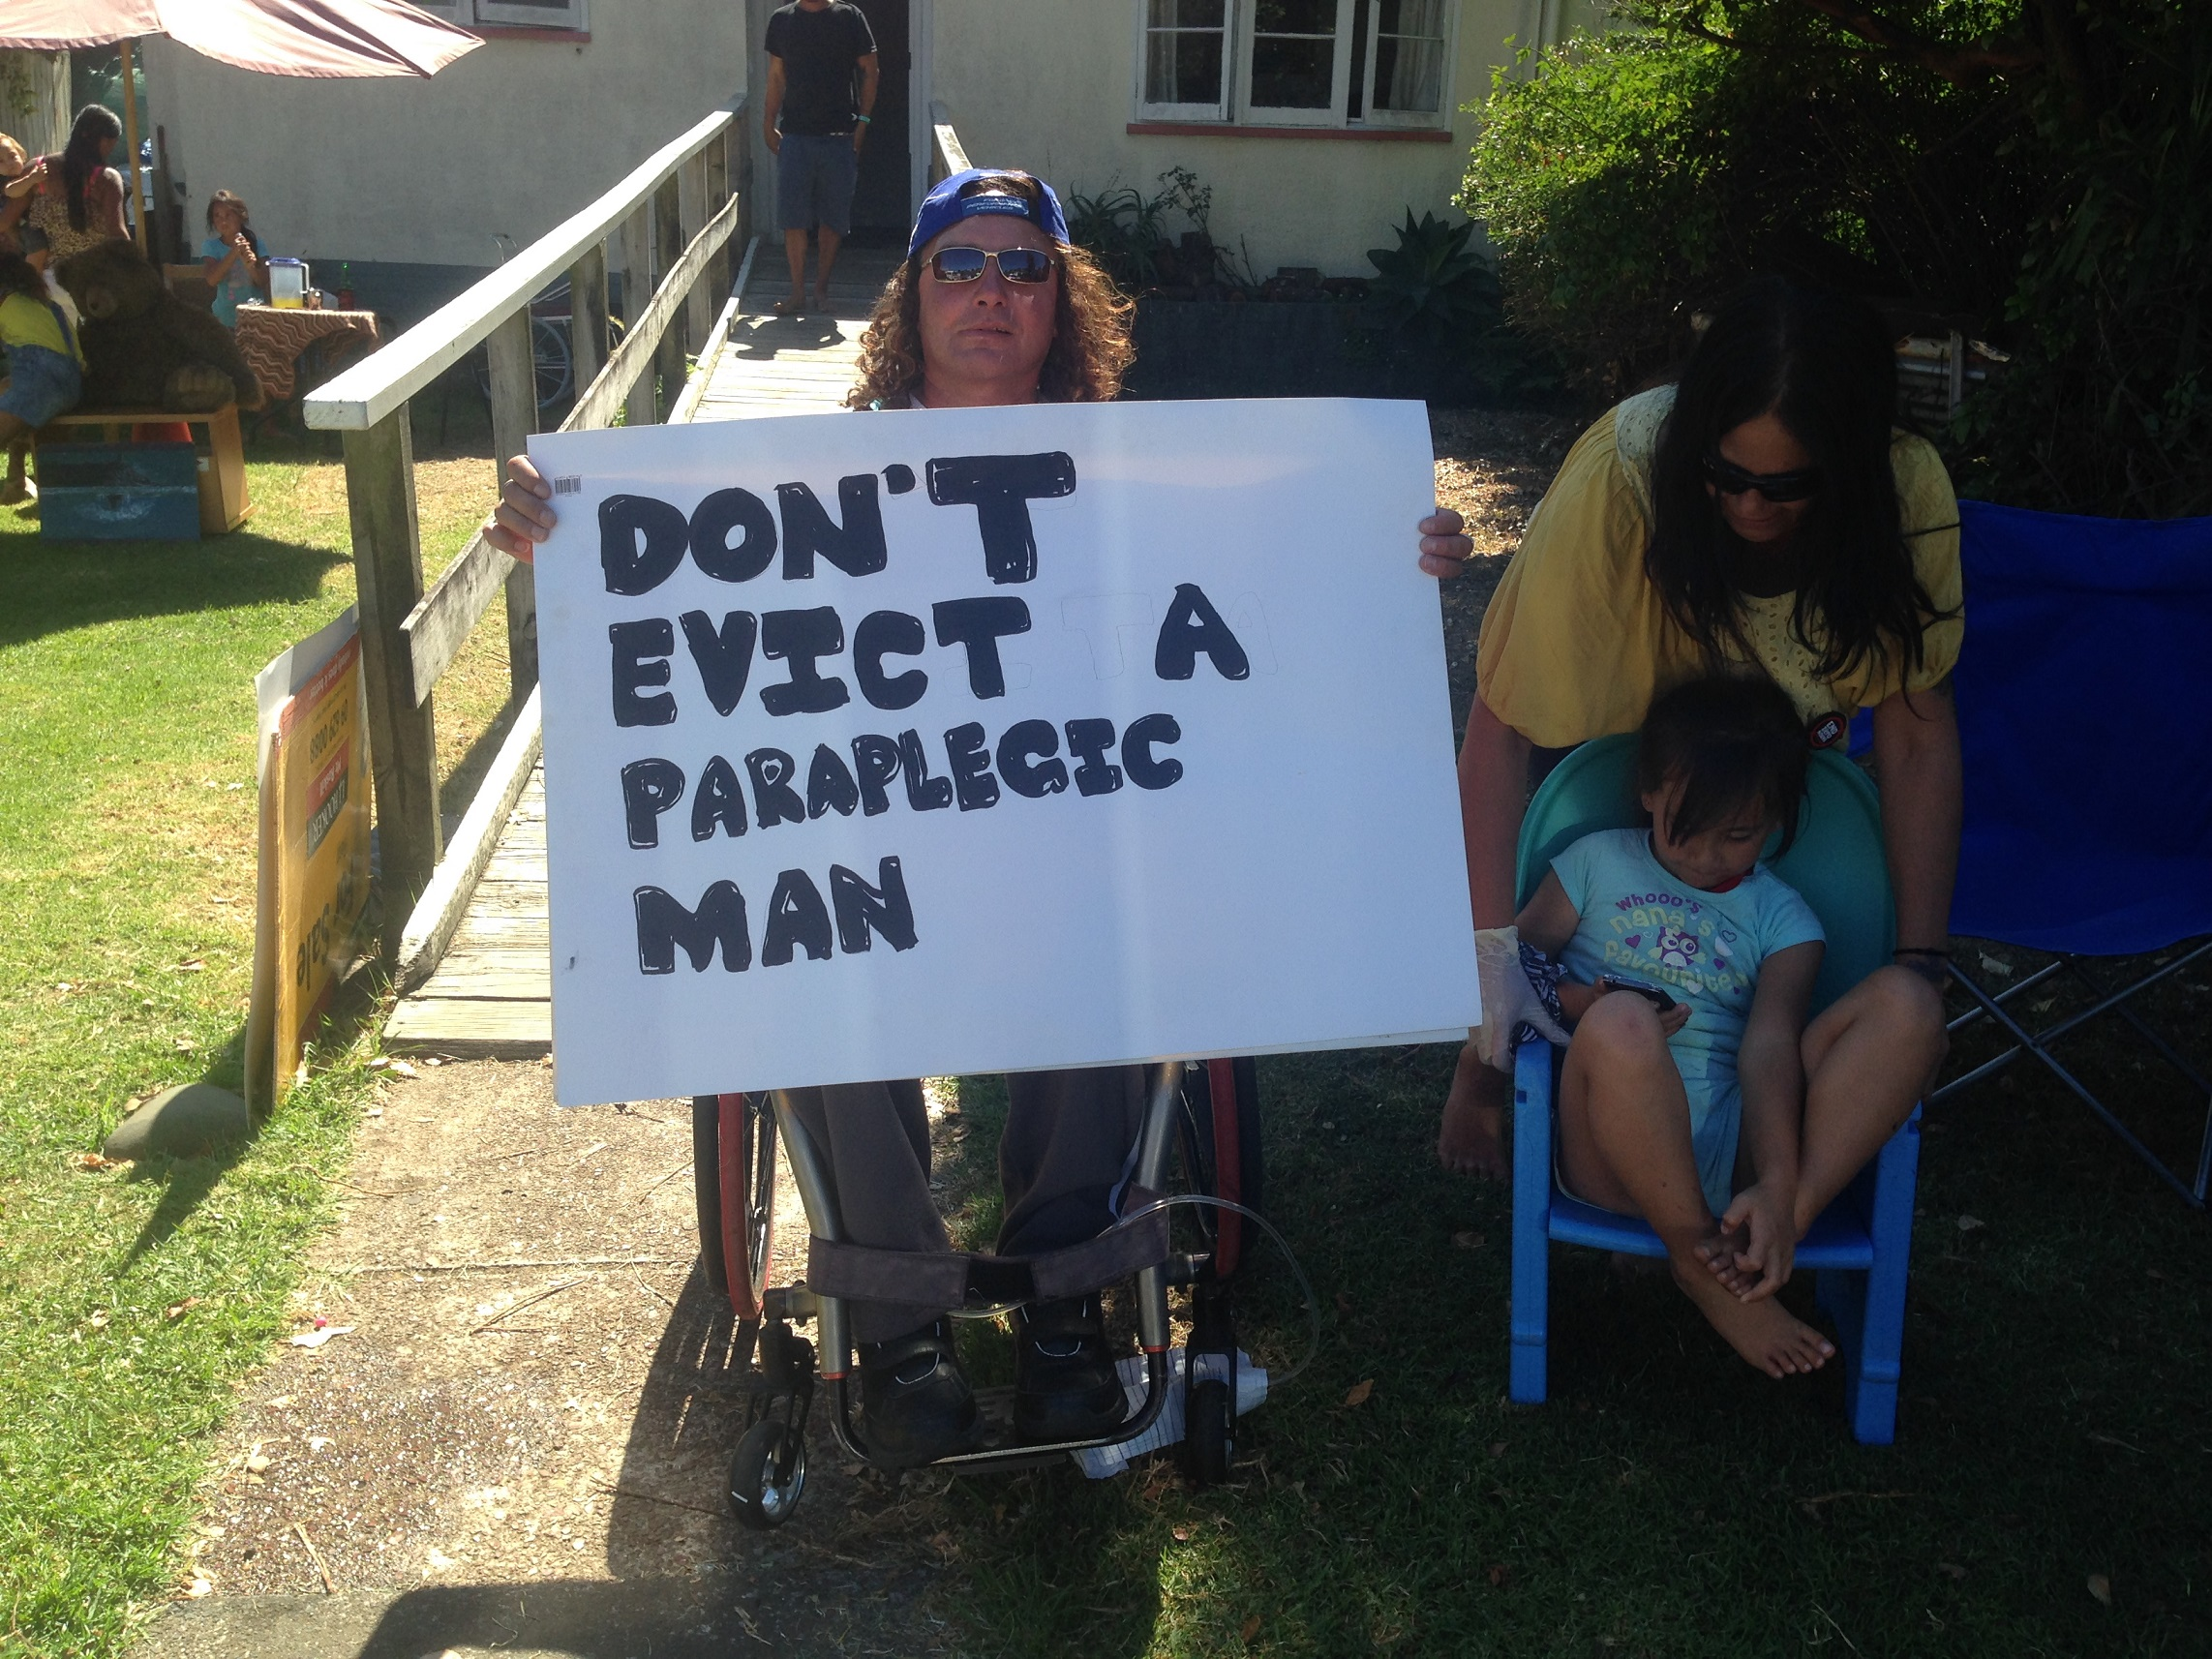 Paraplegic man to be evicted on Monday POSTPONED